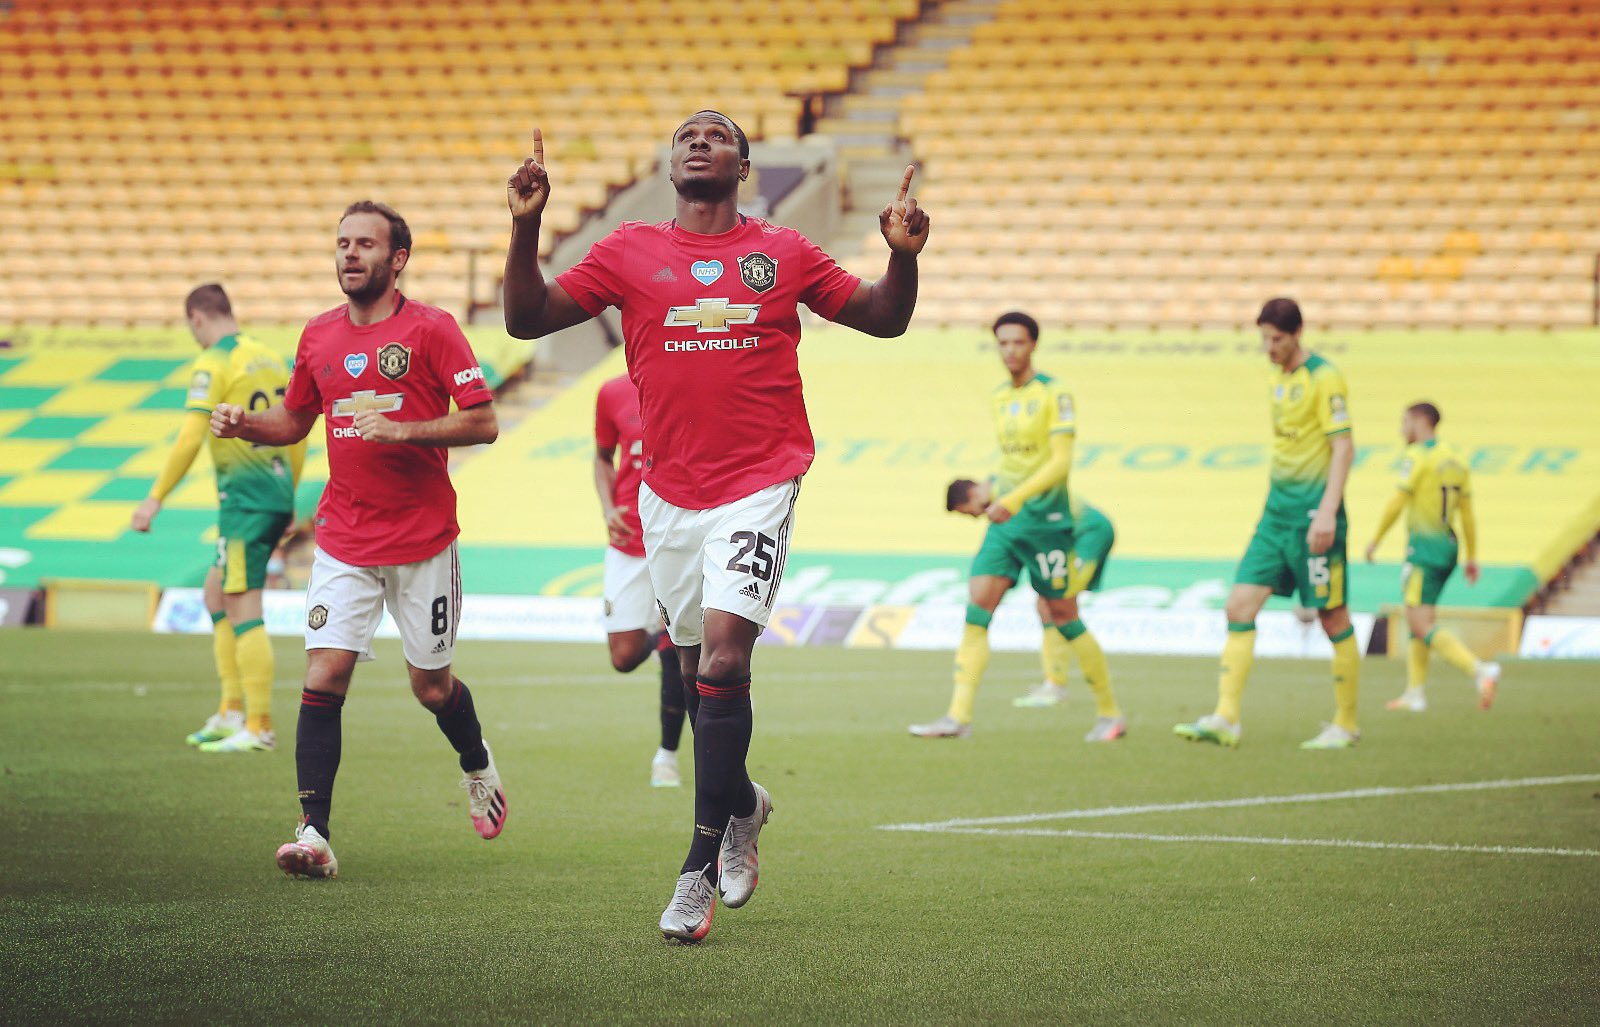 Ighalo Nominated For Man United's Goal Of The Month Award